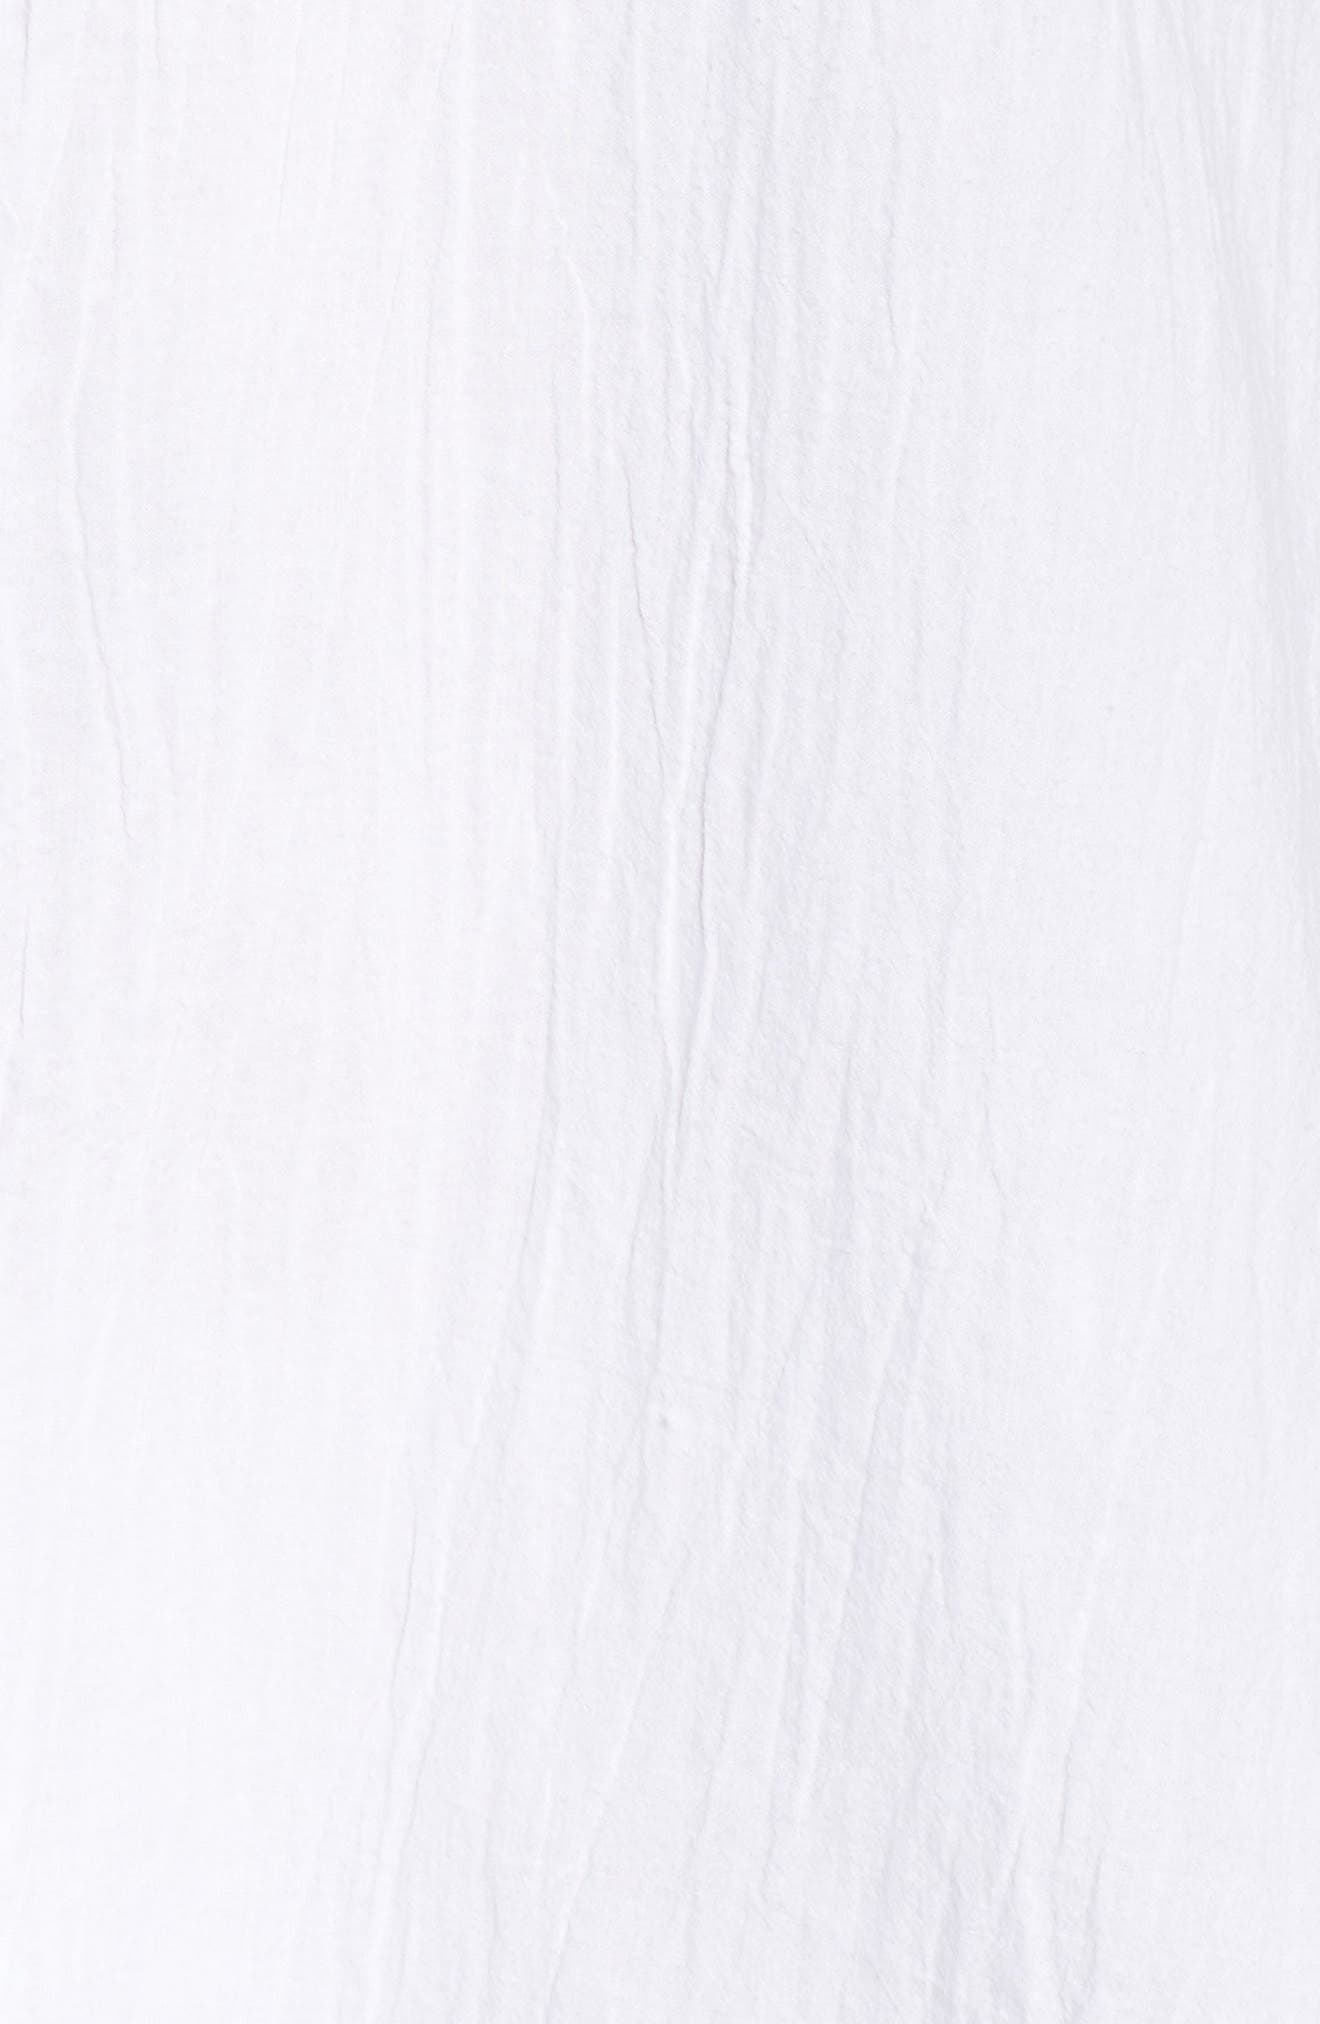 TOMMY BAHAMA,                             Boyfriend Shirt Cover-Up,                             Alternate thumbnail 6, color,                             WHITE